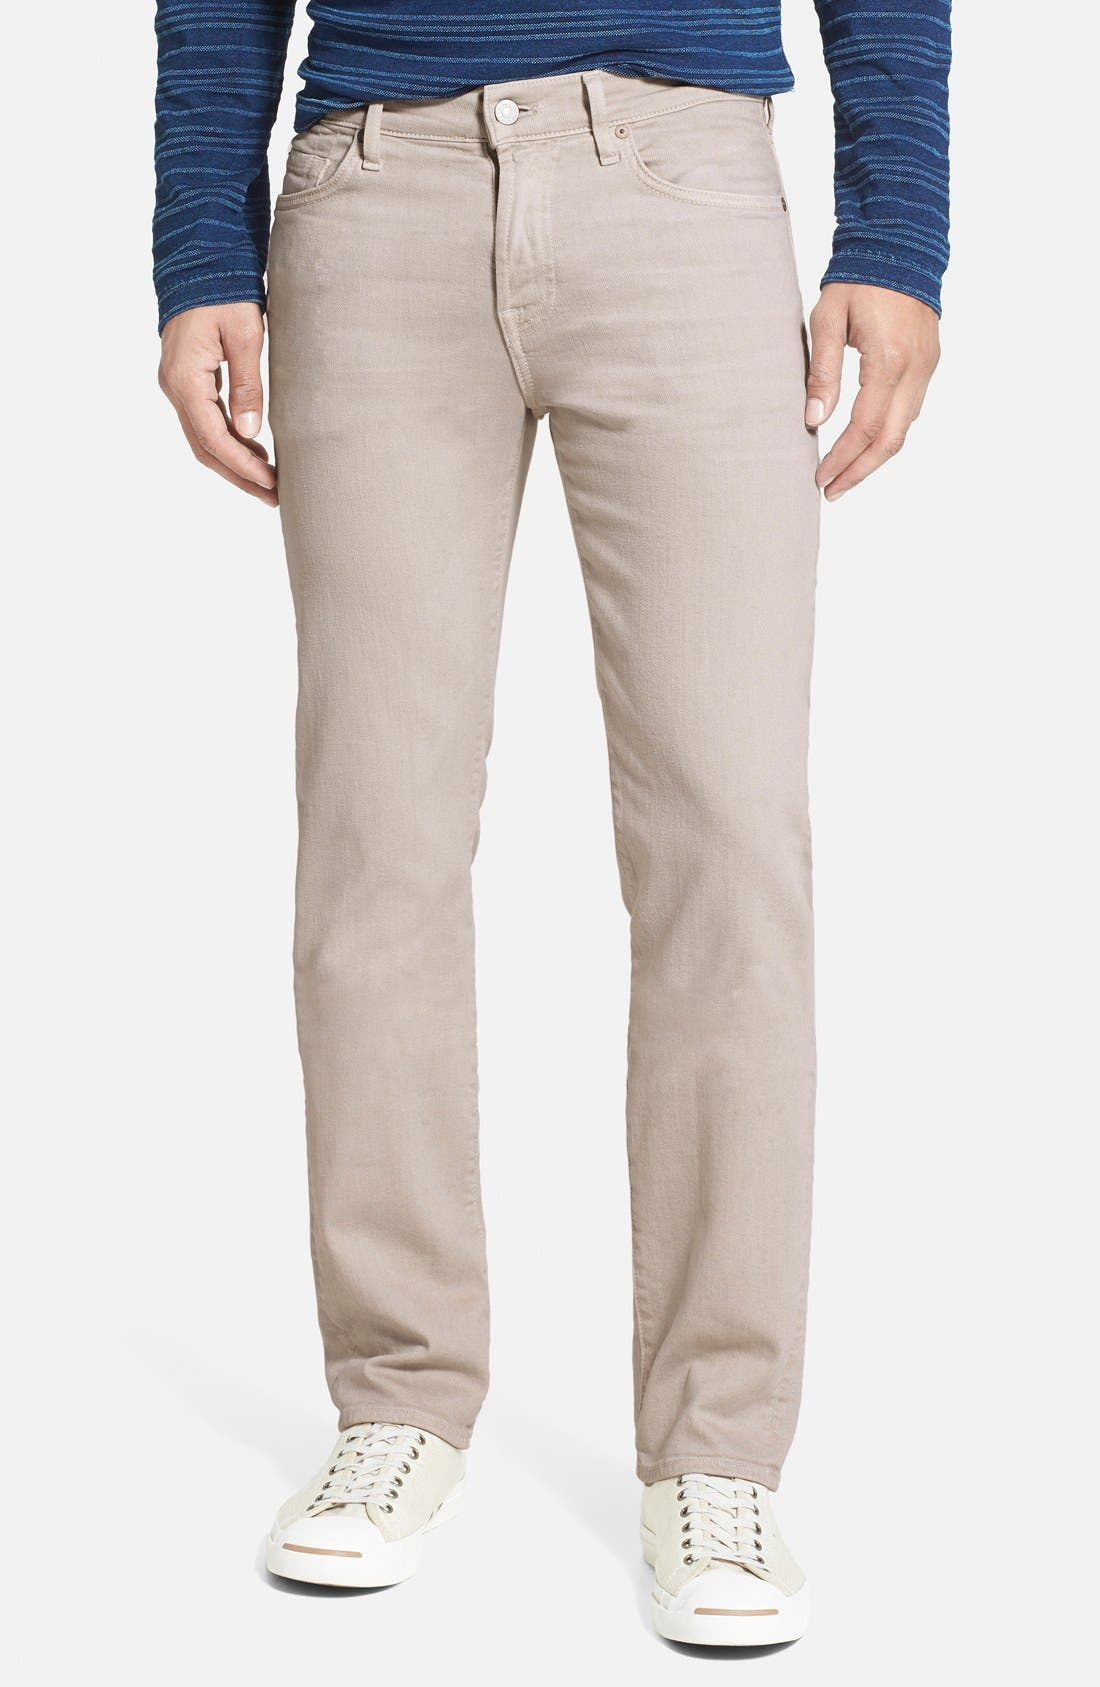 Main Image - 7 For All Mankind® 'Slimmy - Luxe Performance' Slim Fit Jeans